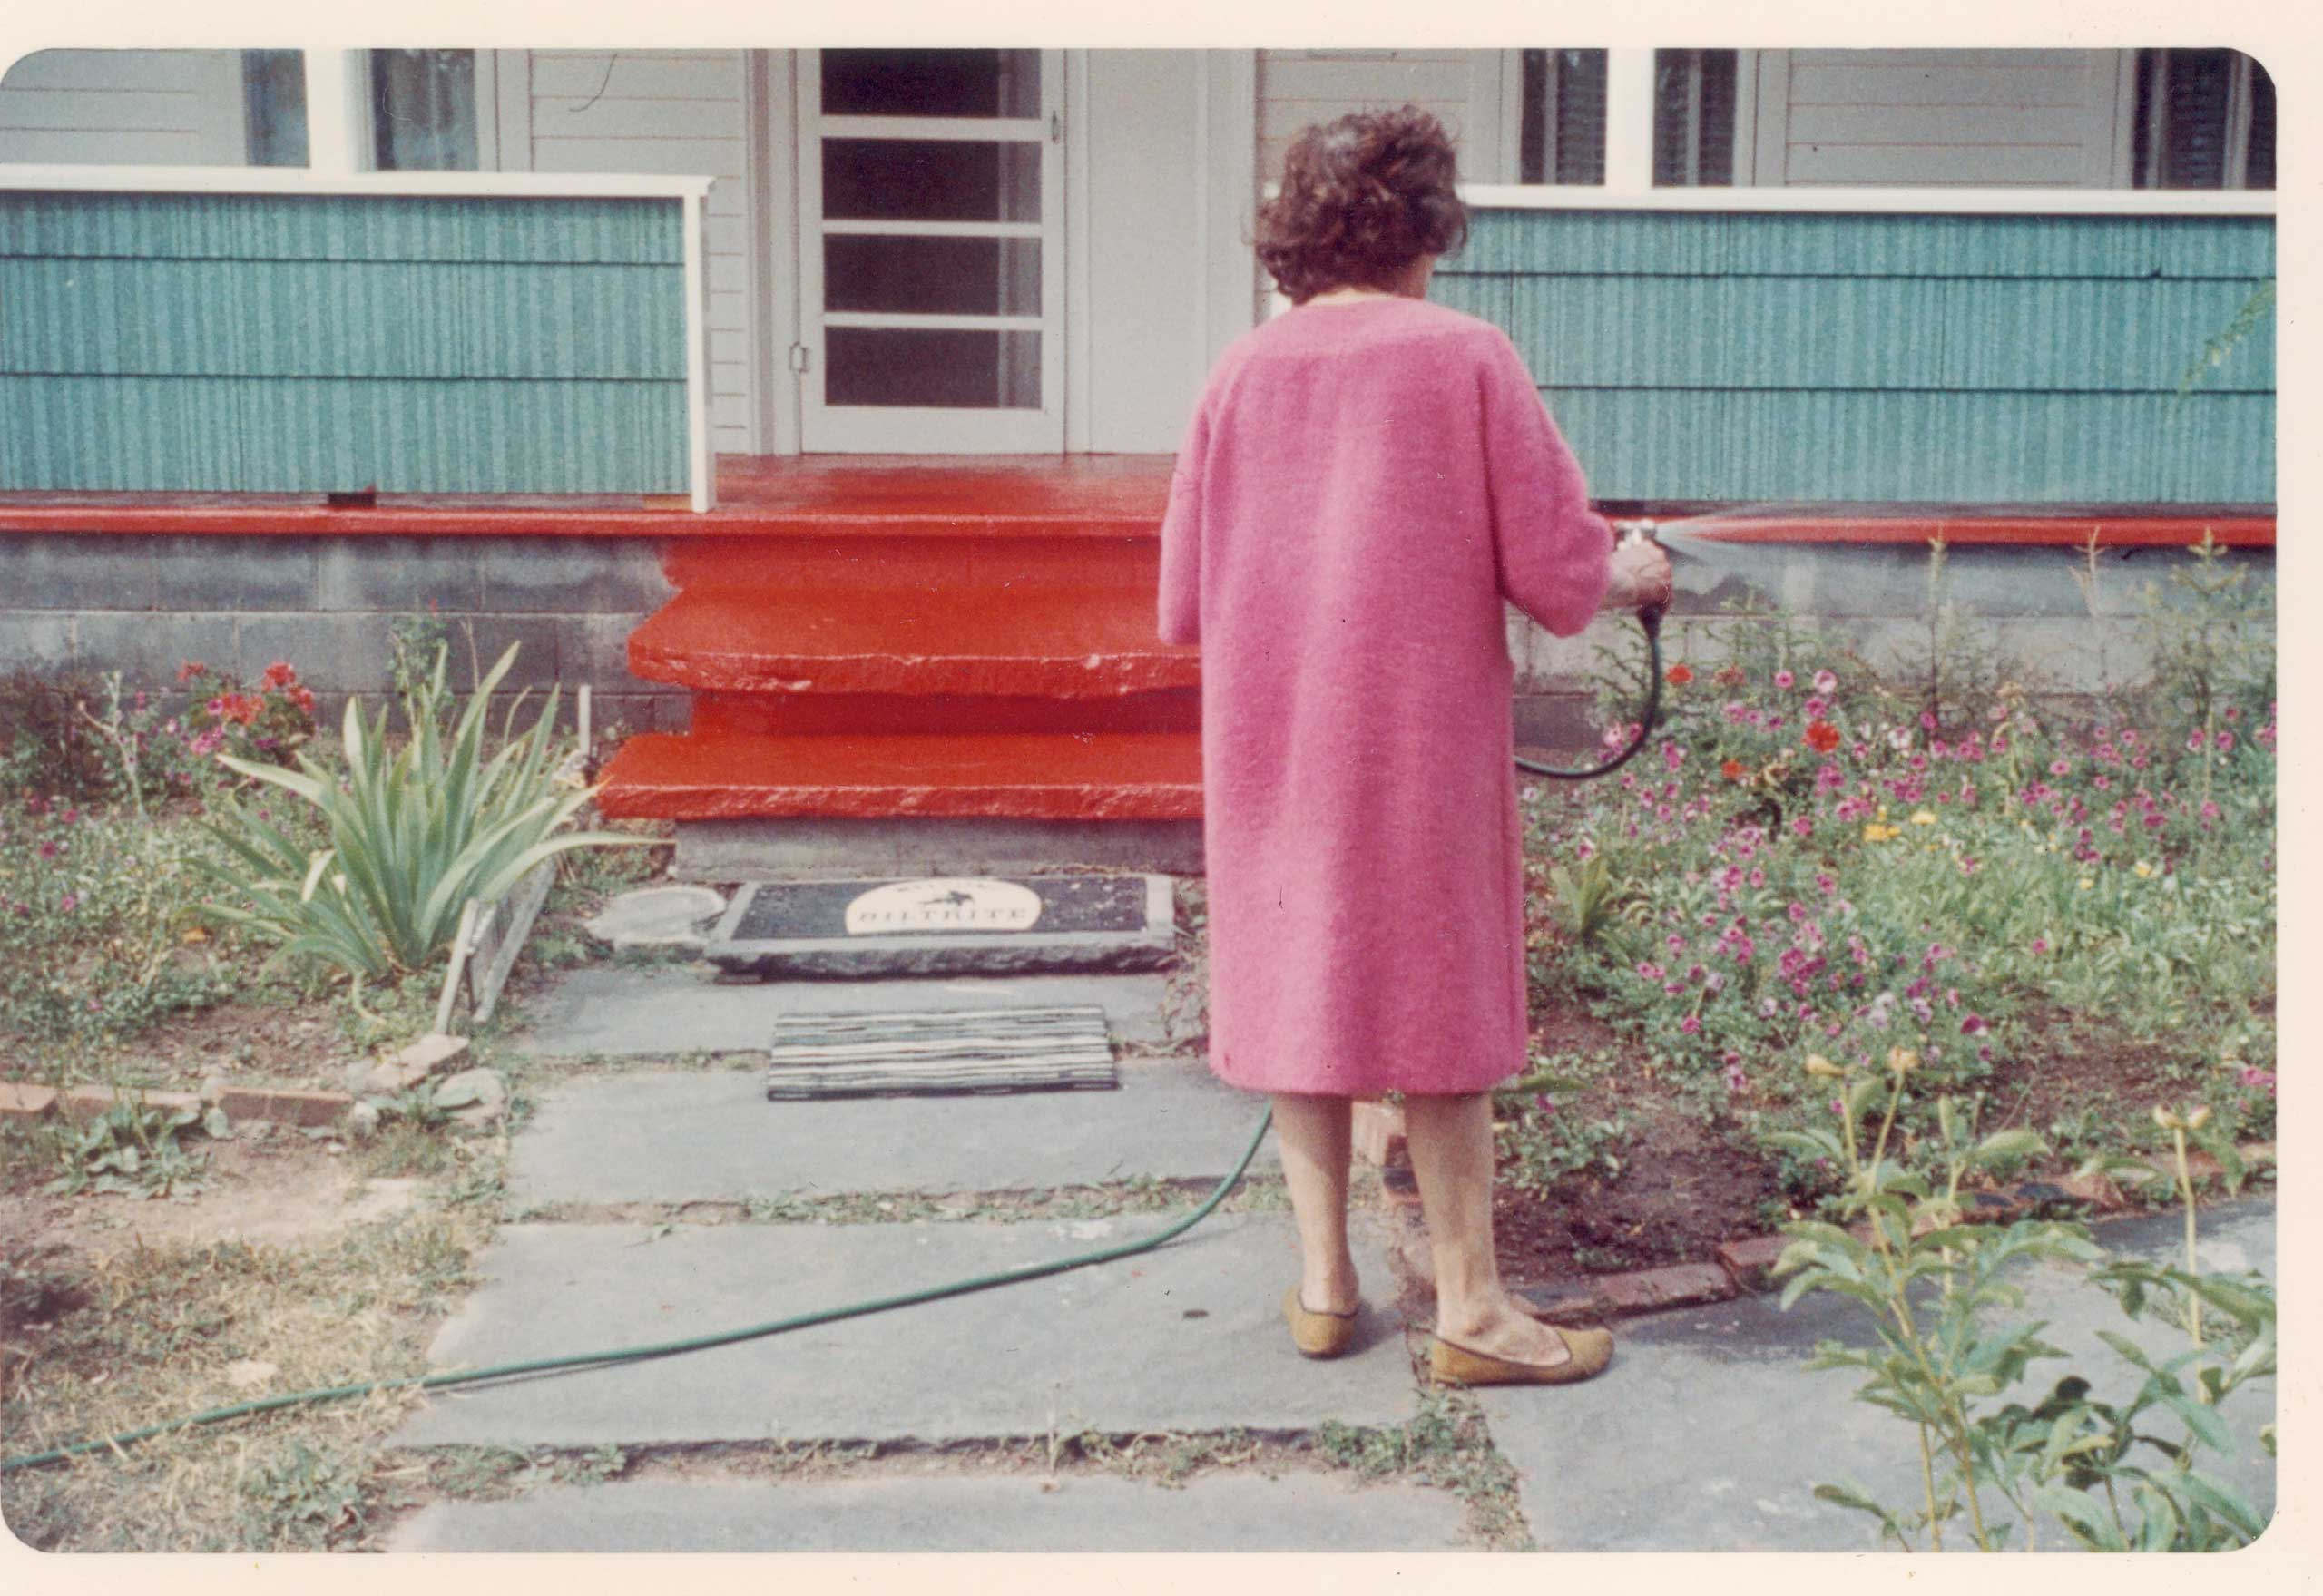 From Casa Susanna, a collection of found photographs edited by Michel Hurst and Robert Swope.